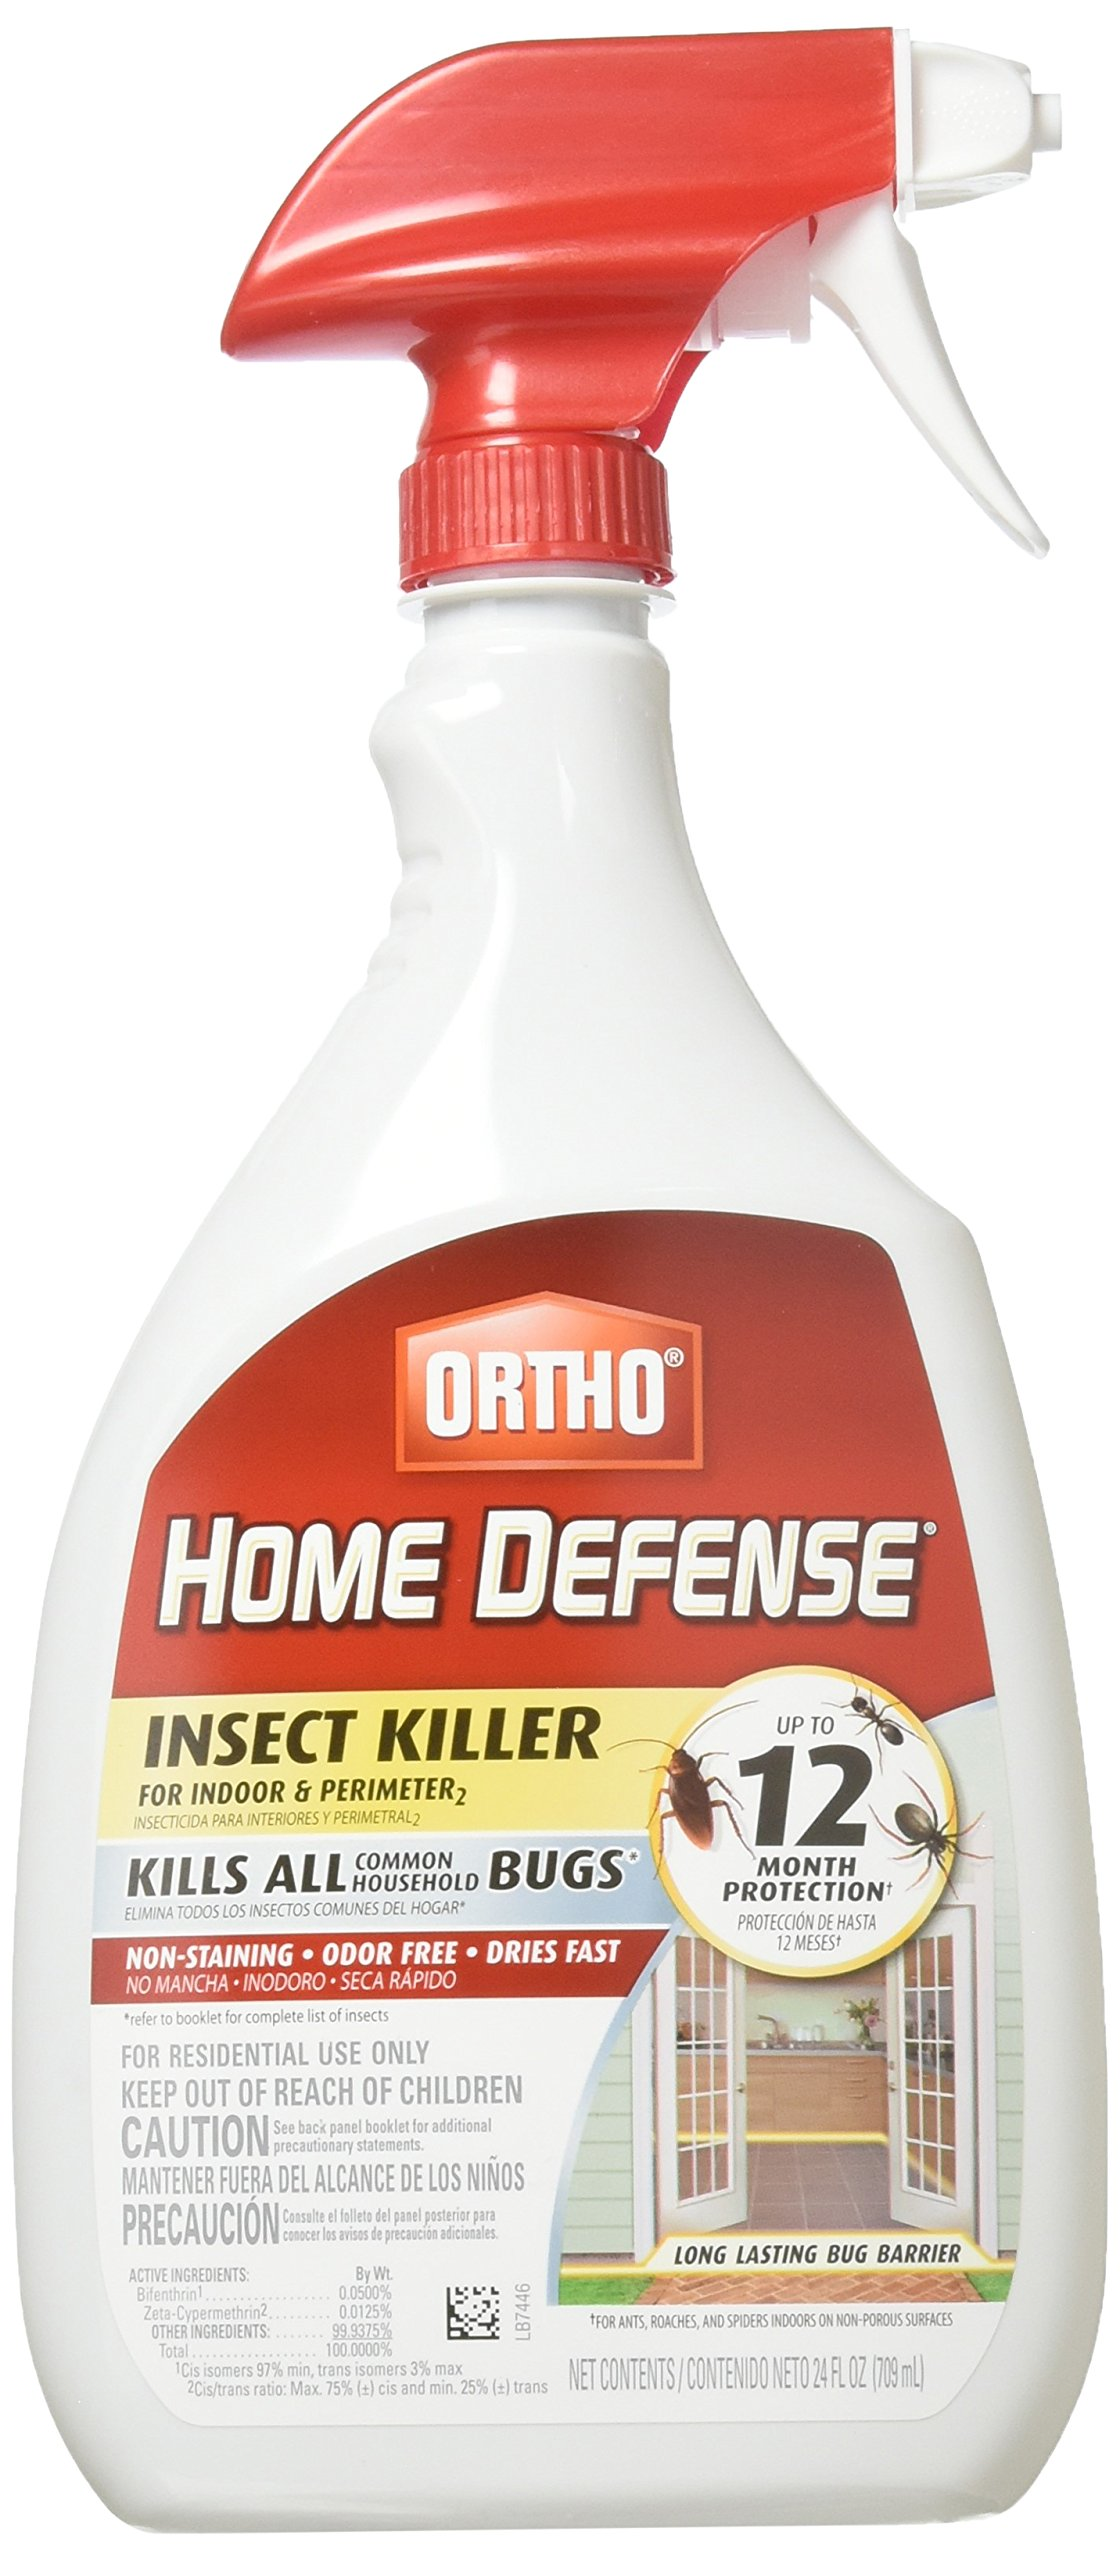 Ortho 0196410 Home Defense MAX Insect Killer Spray for Indoor and Home Perimeter, 24-Ounce (Ant, Roach, Spider, Stinkbug & Centipede Killer)(2Pack) by Ortho